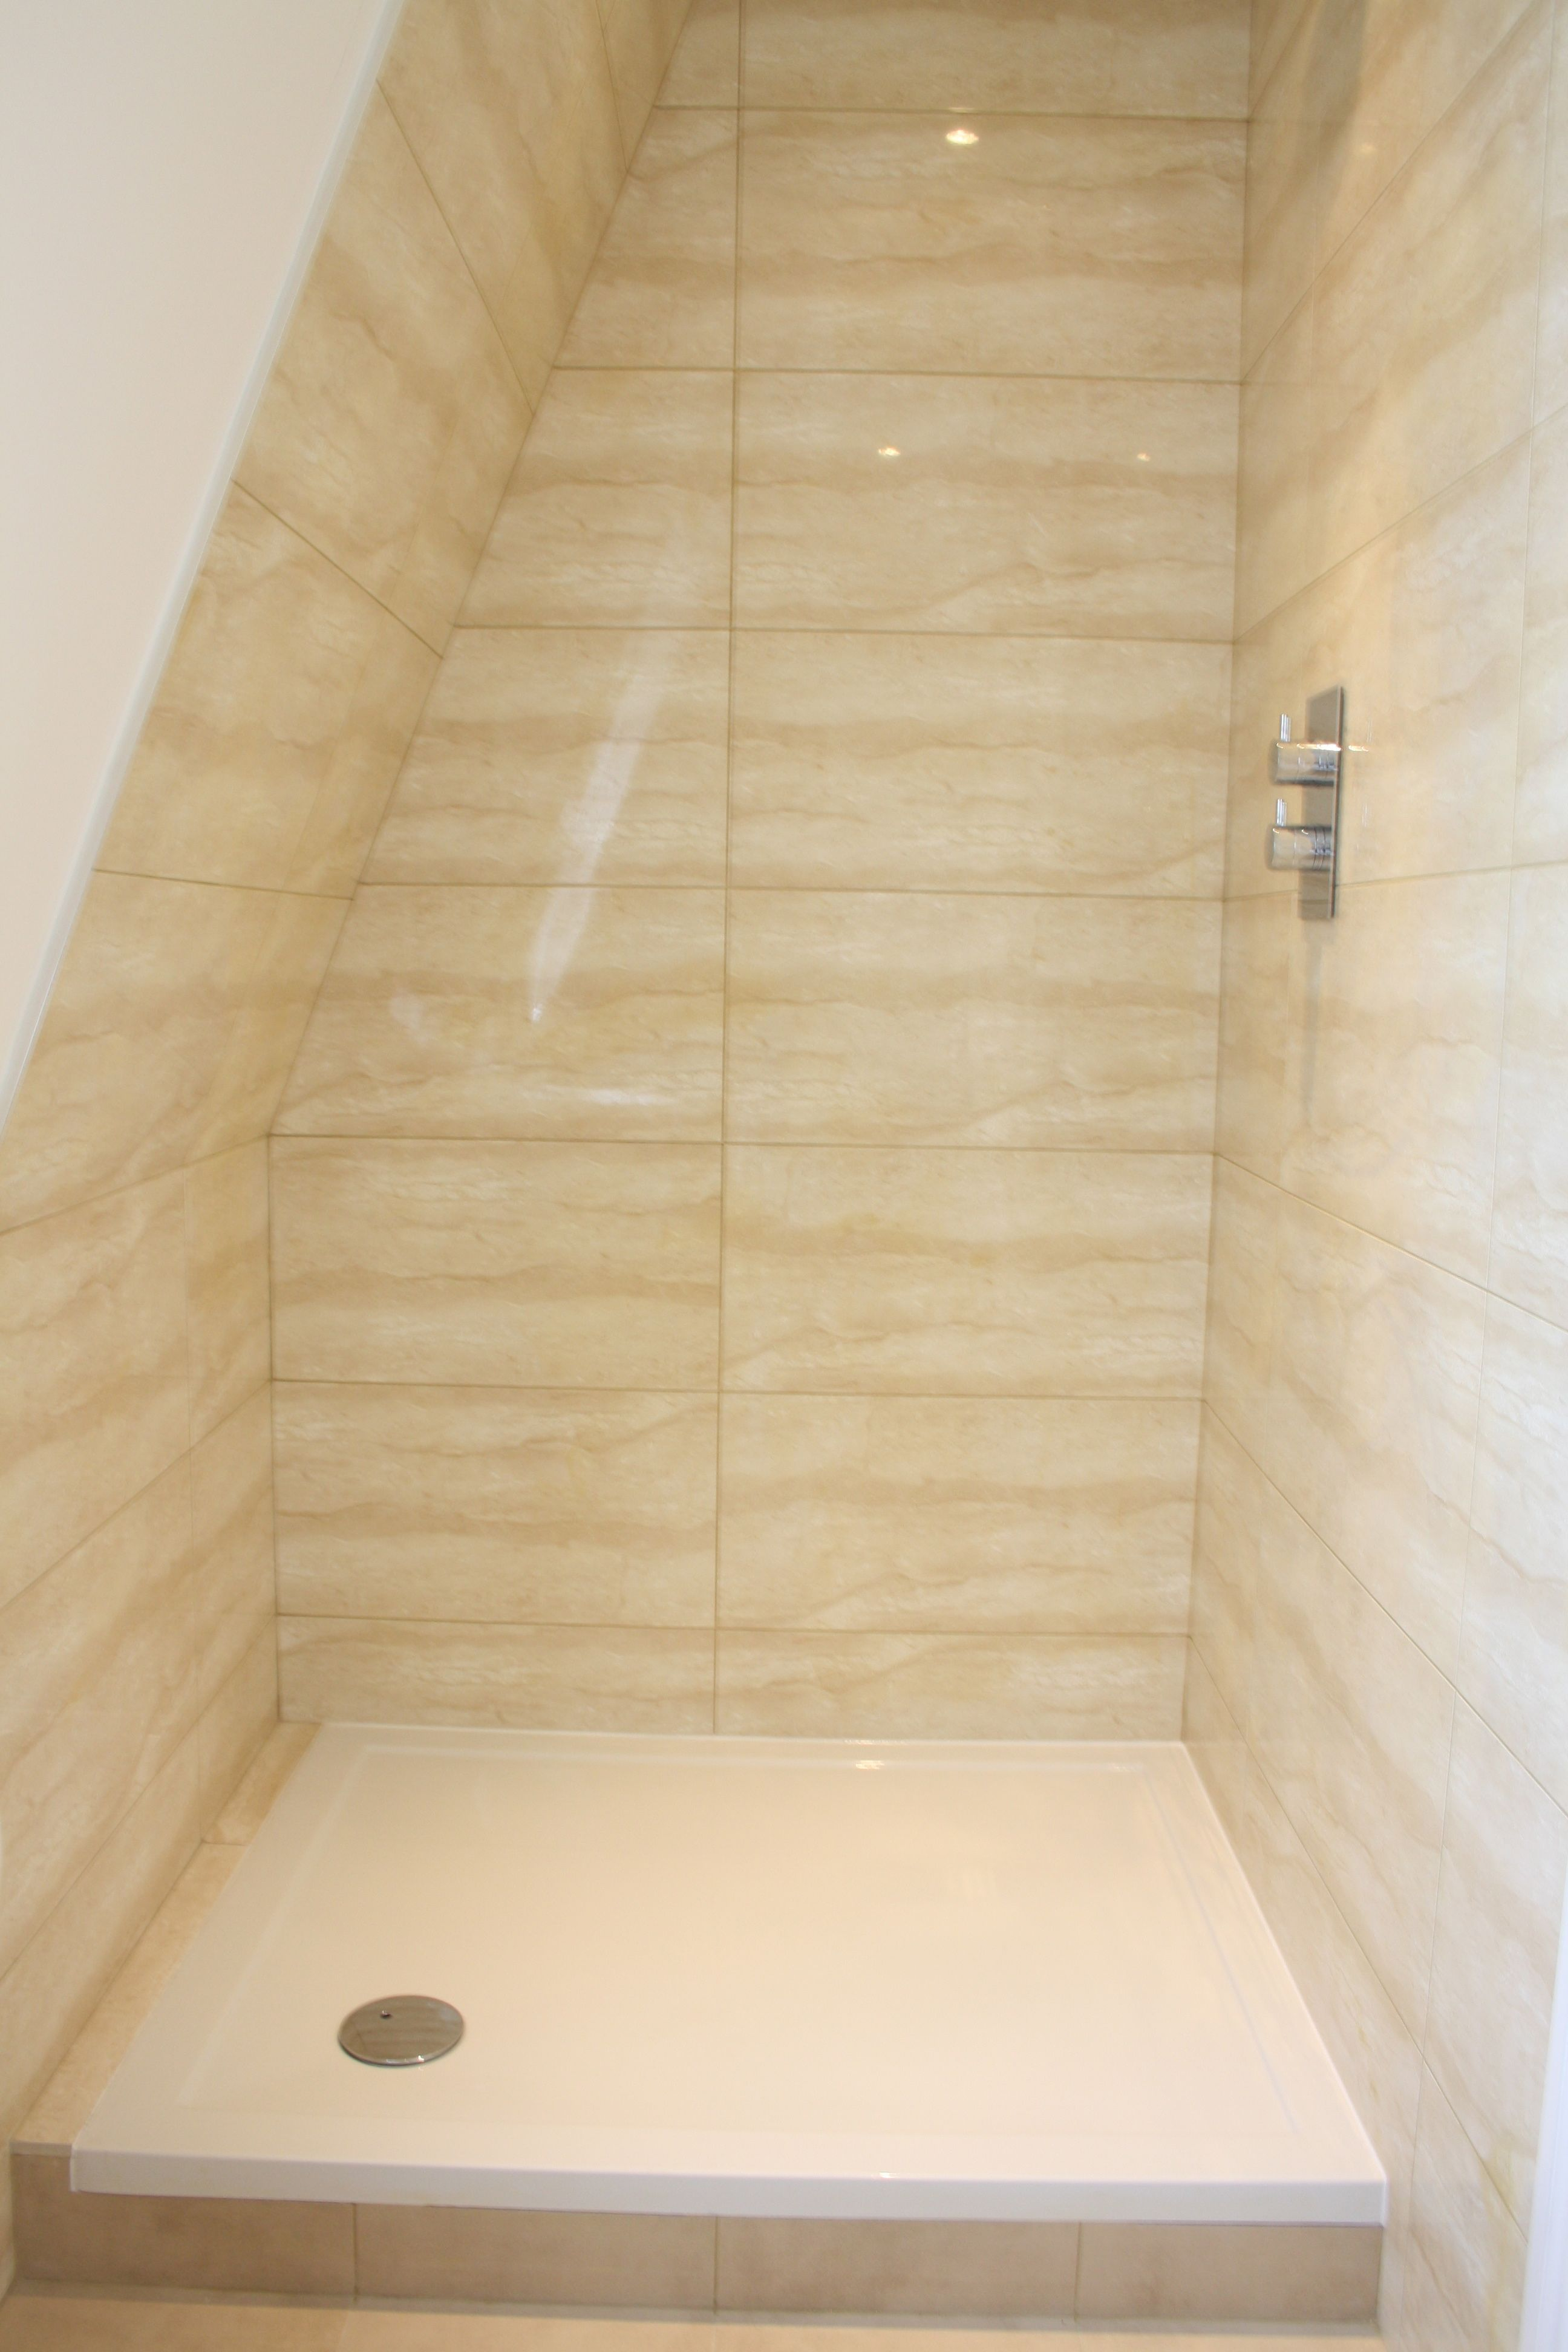 Small shower room in loft conversion, Barnes South West London ...